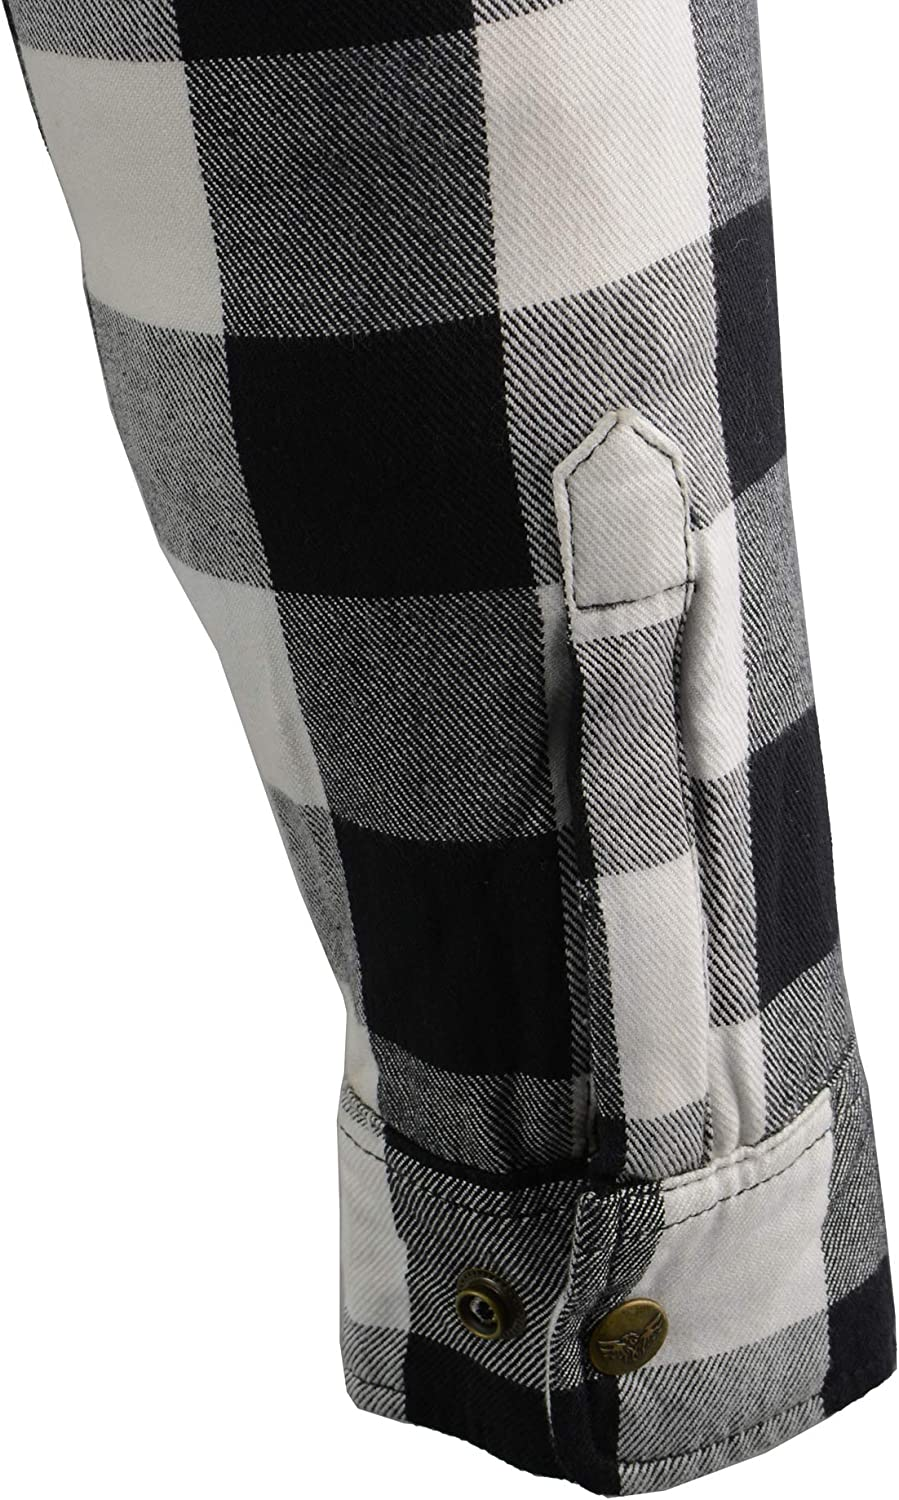 Medium Milwaukee Leather MPM1633 Mens Armored Checkered Flannel Biker Shirt with Aramid by DuPont Fibers Blk//White